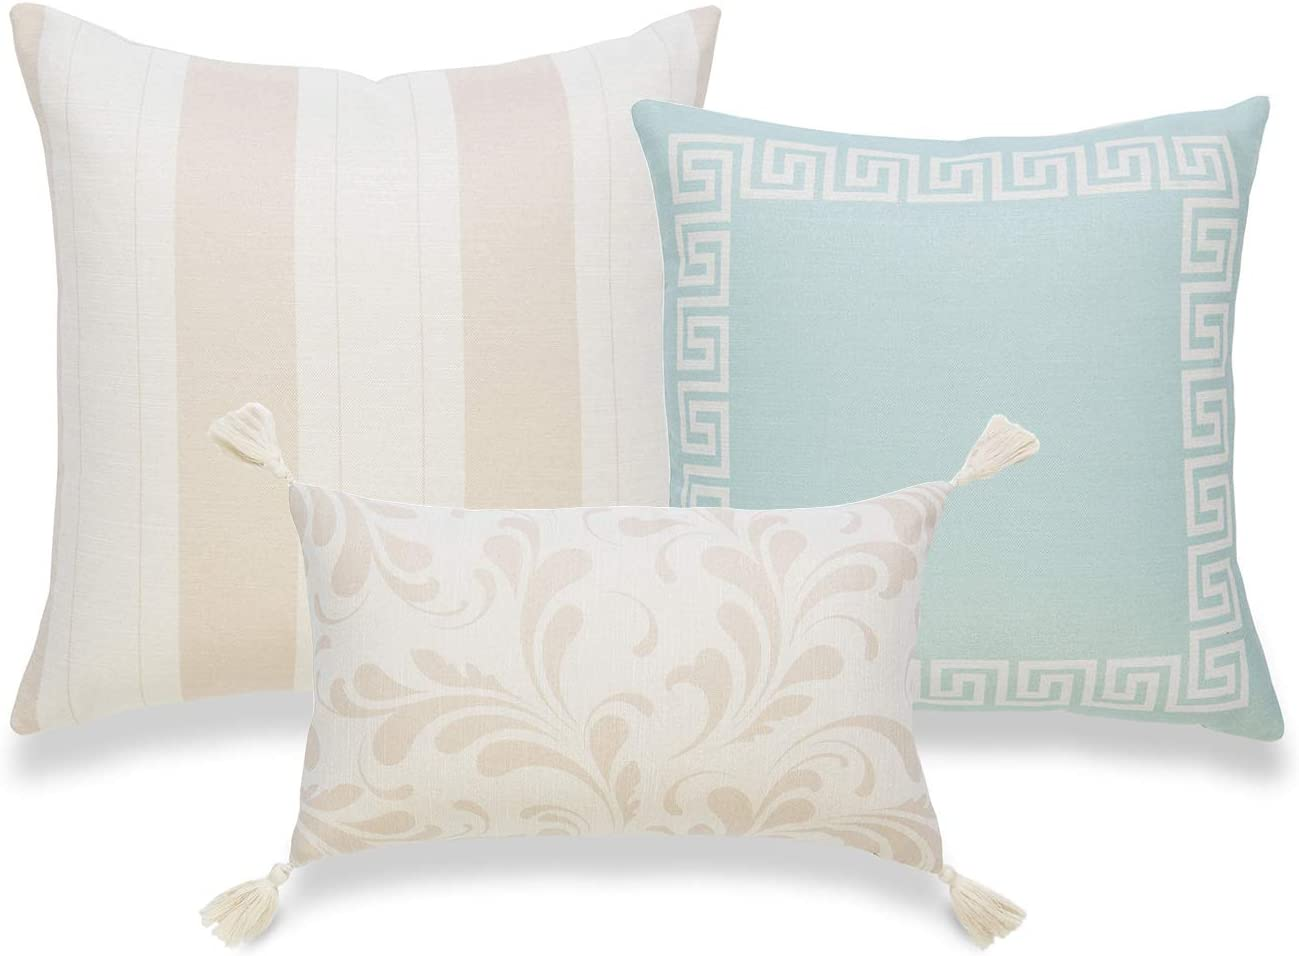 Hofdeco Coastal Decorative Lumbar Throw Pillow Cover ONLY for Couch, Sofa, or Bed, Taupe Light Aqua Greek Key Floral Striped Tassel, 18